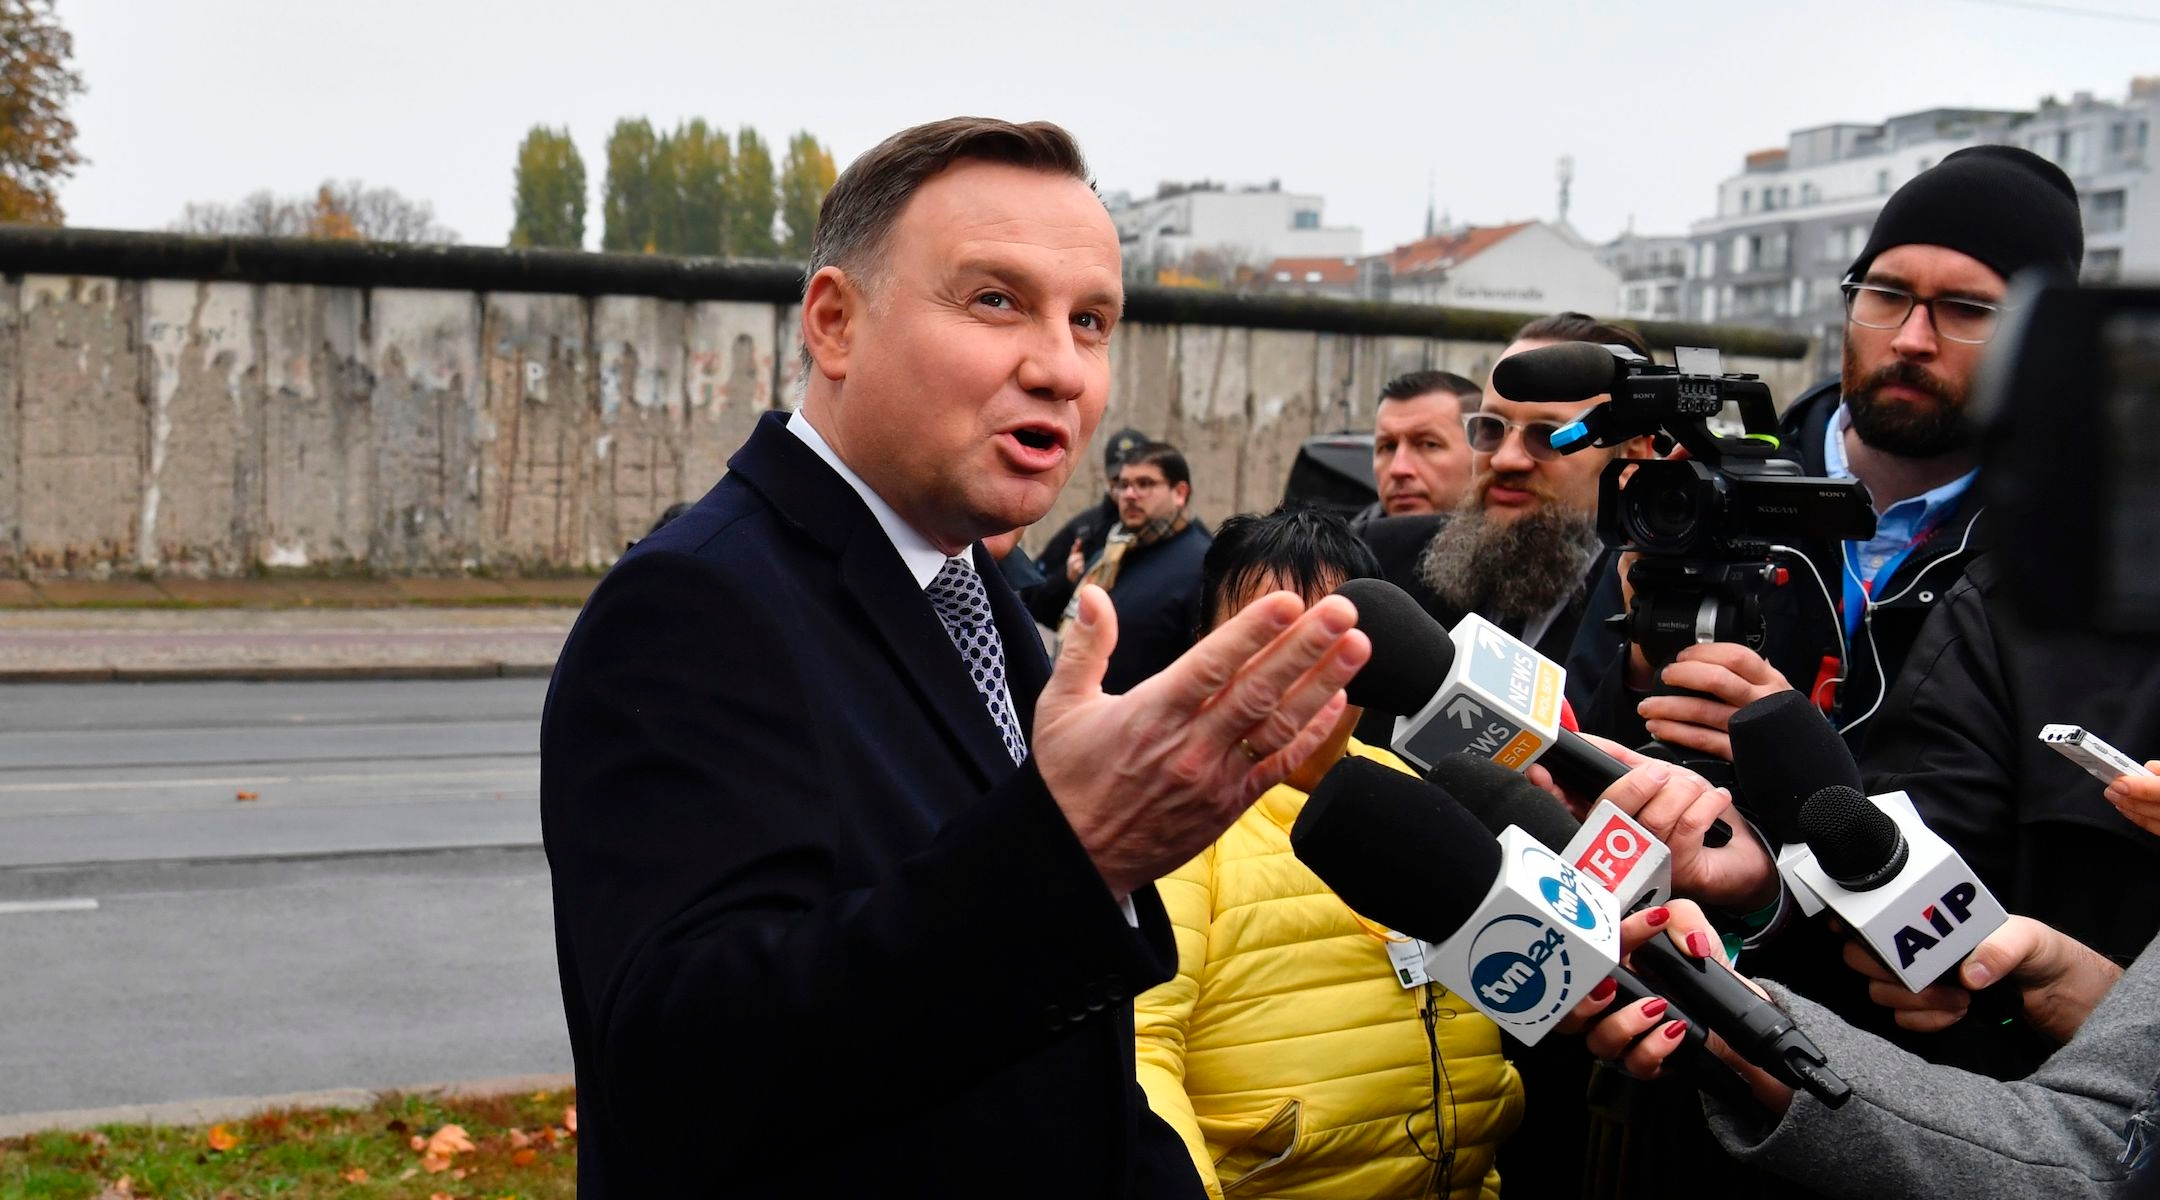 Andrzej Duda, Polish president who vowed no reparations for Jews, appears to eke out reelection